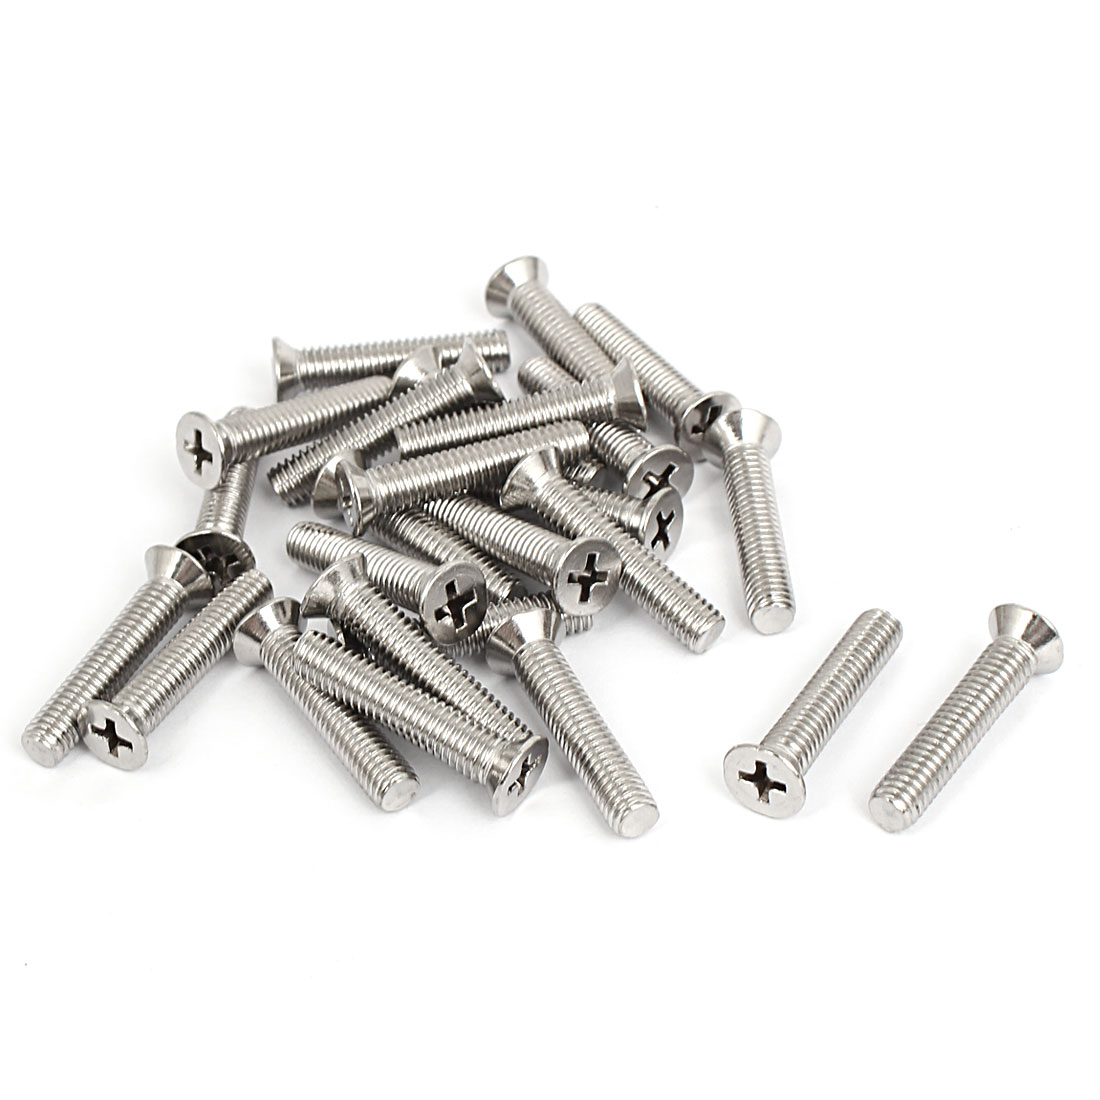 M6x30mm Stainless Steel Countersunk Flat Head Cross Phillips Screw Bolts 25pcs